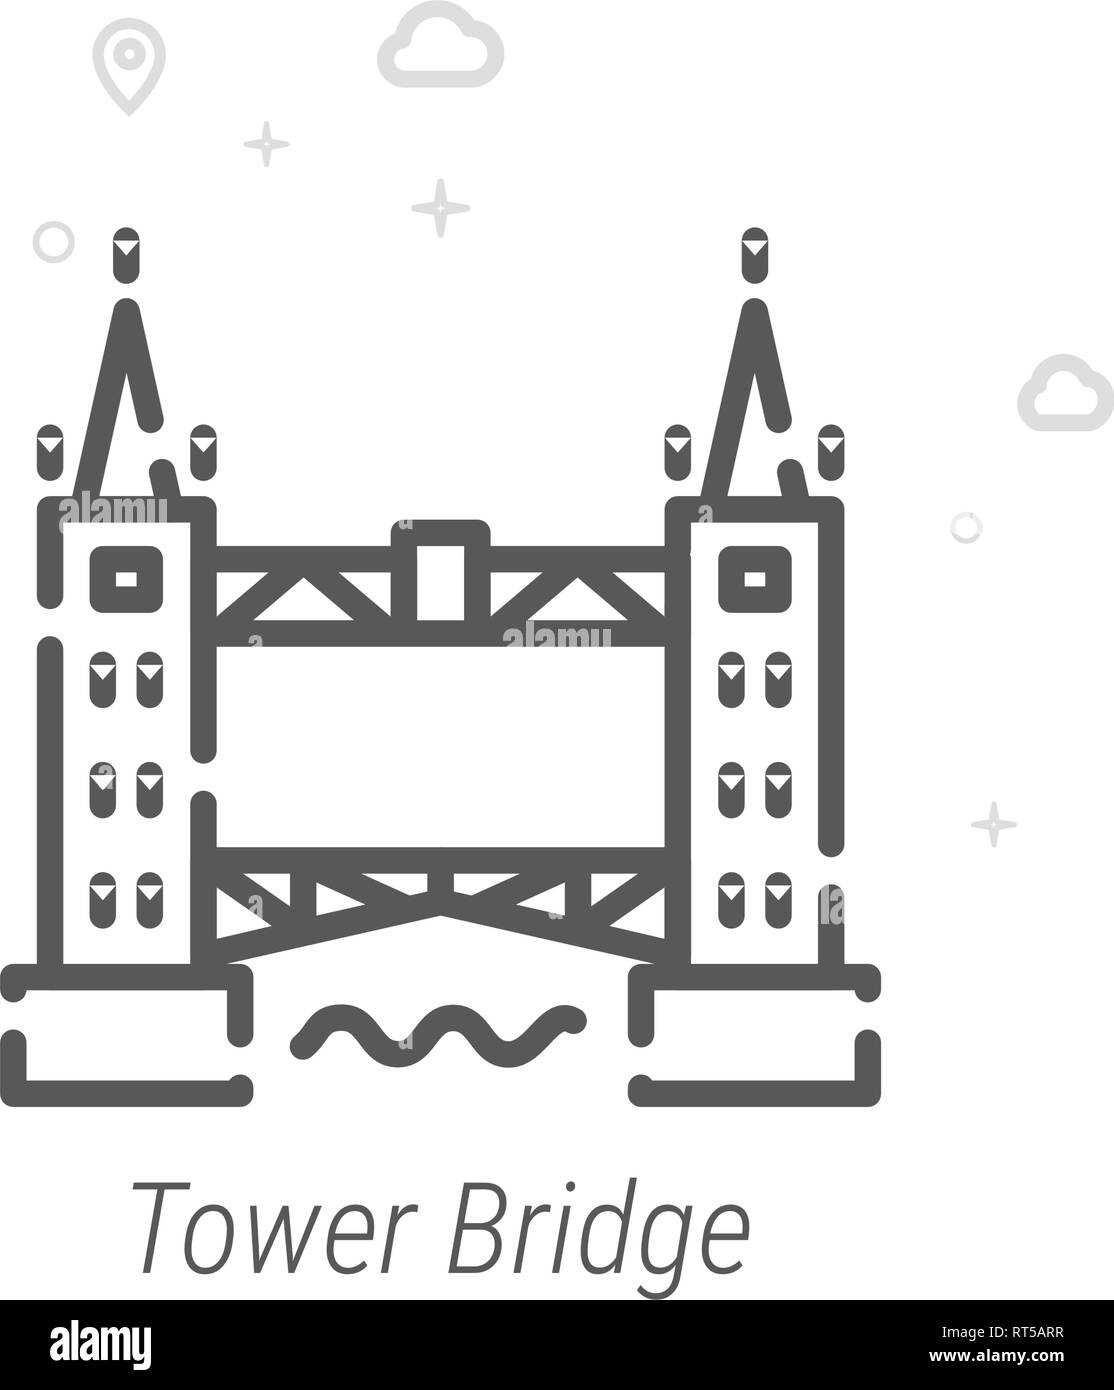 Tower Bridge, London Vector Line Icon. Historical Landmarks Symbol, Pictogram, Sign. Light Abstract Geometric Background. Editable Stroke. Adjust Line - Stock Image